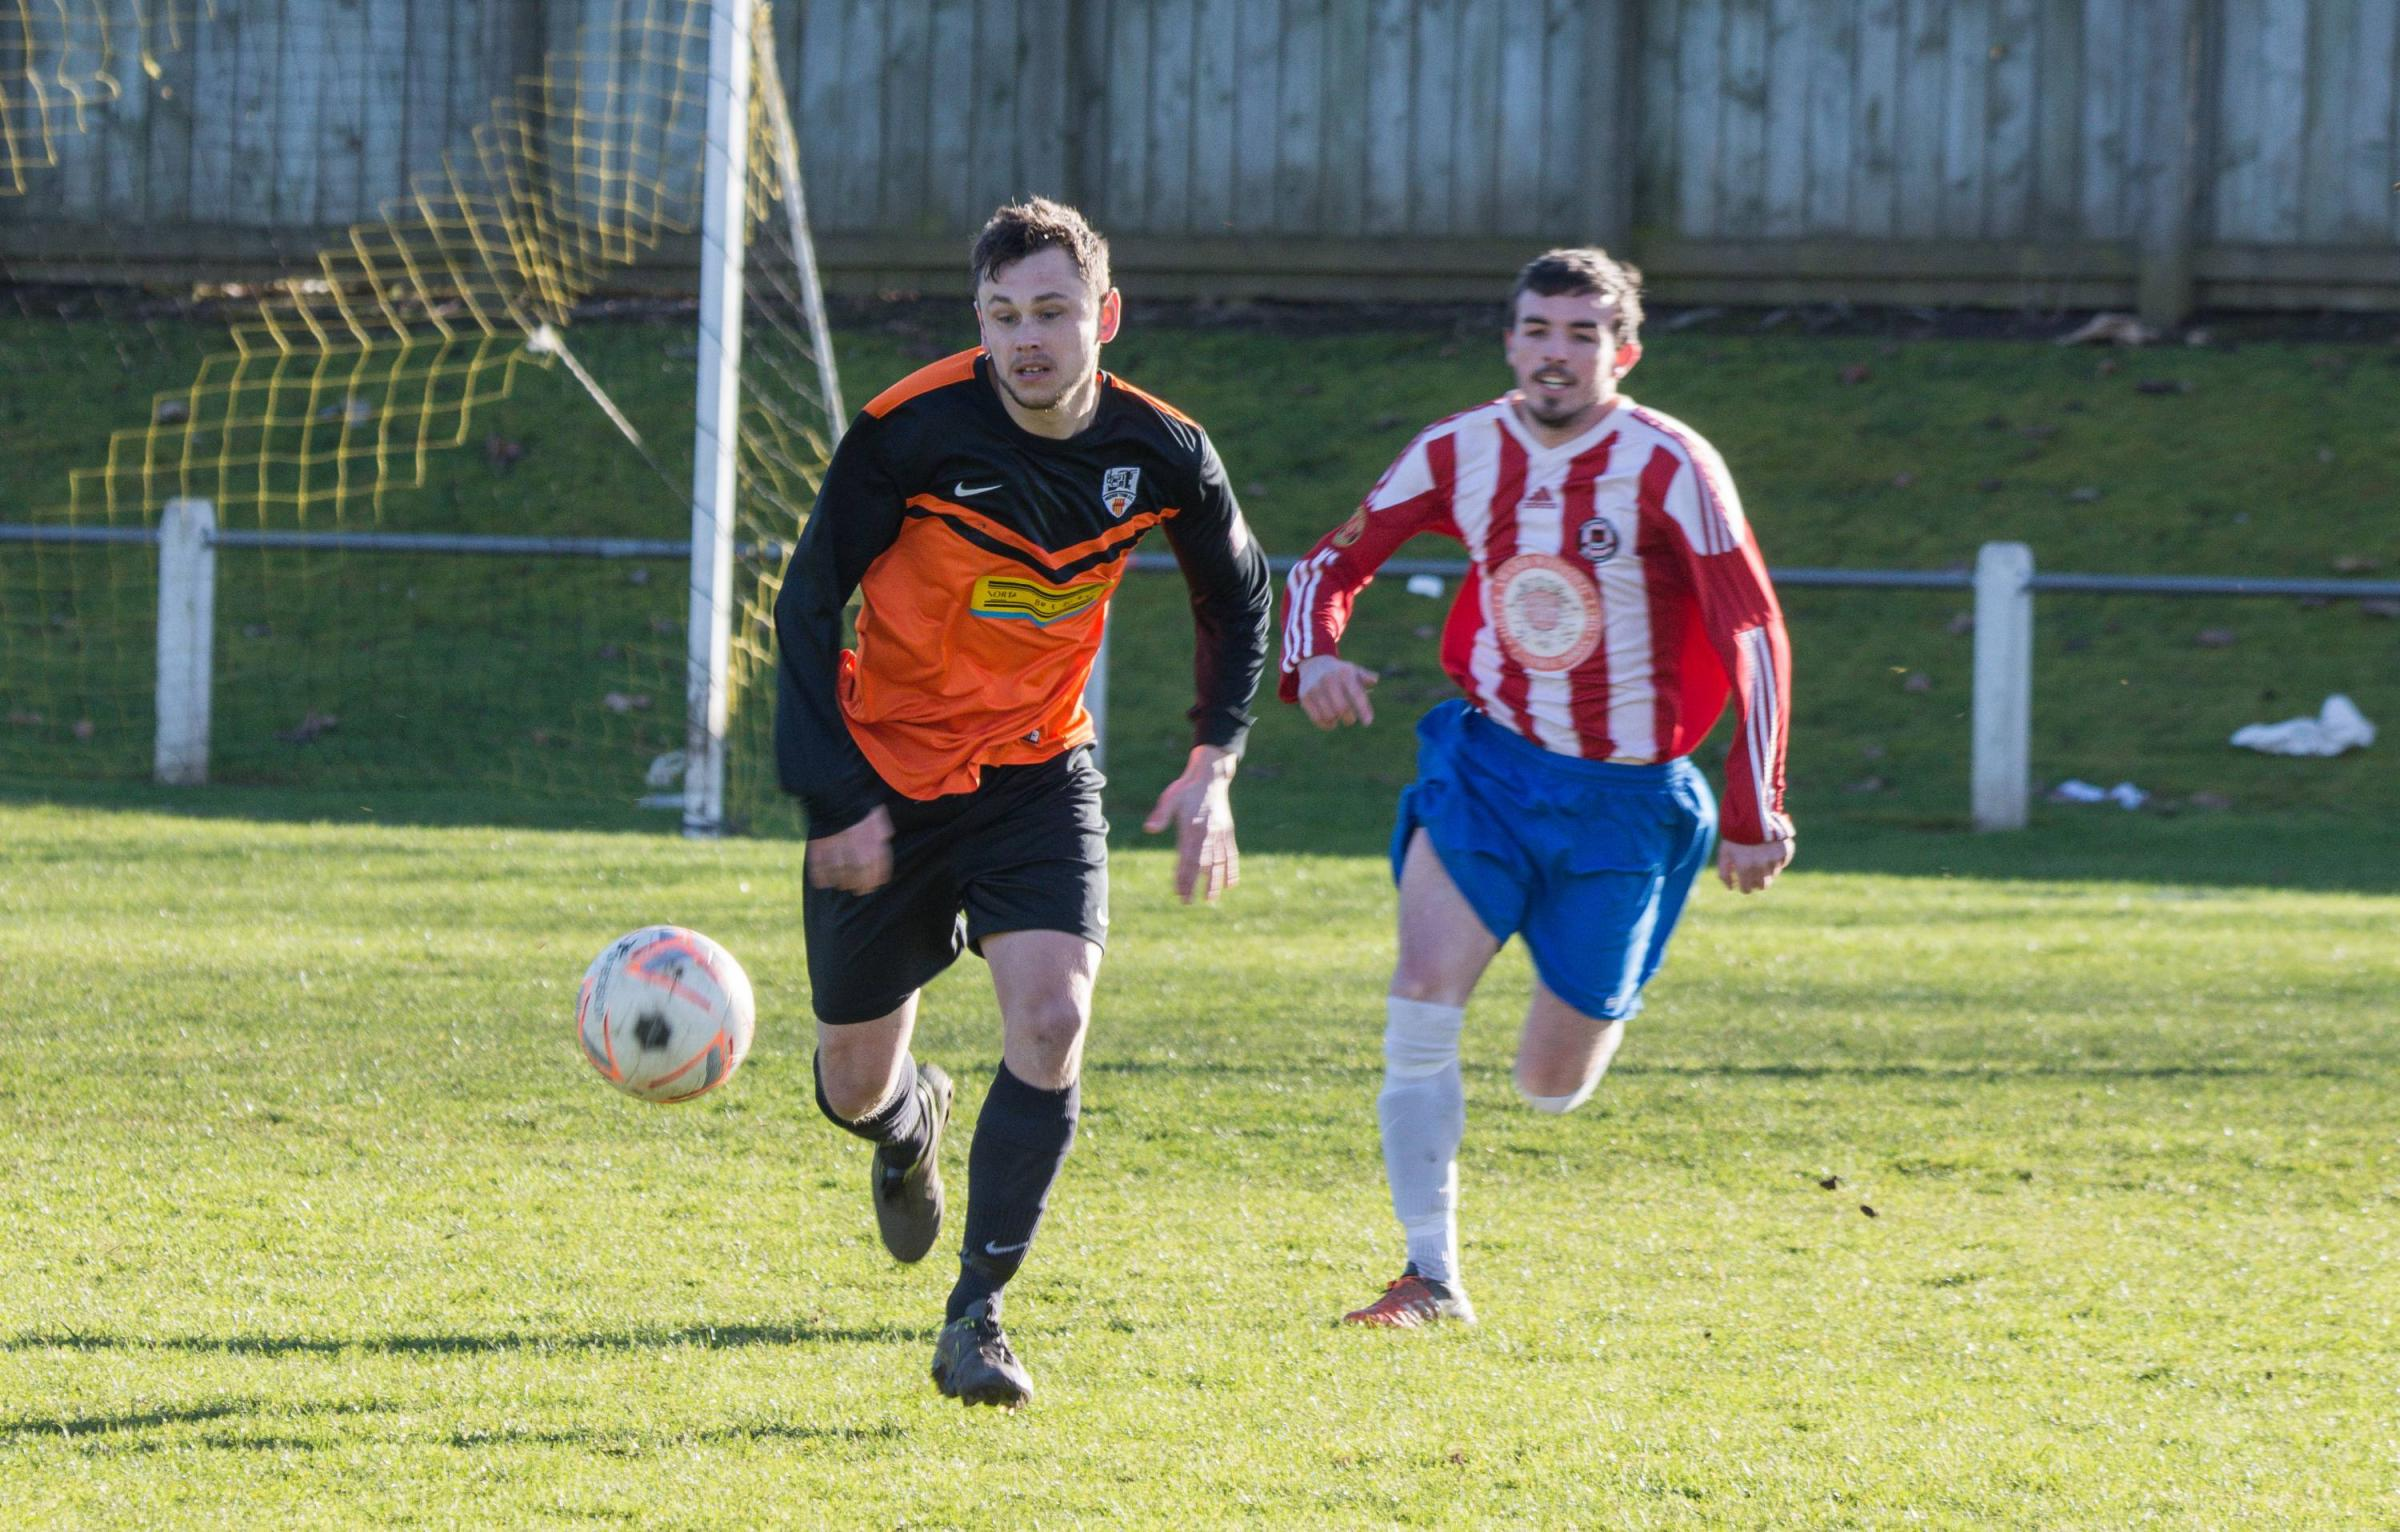 Ste Forster scored a hat-trick for Prudhoe Town.